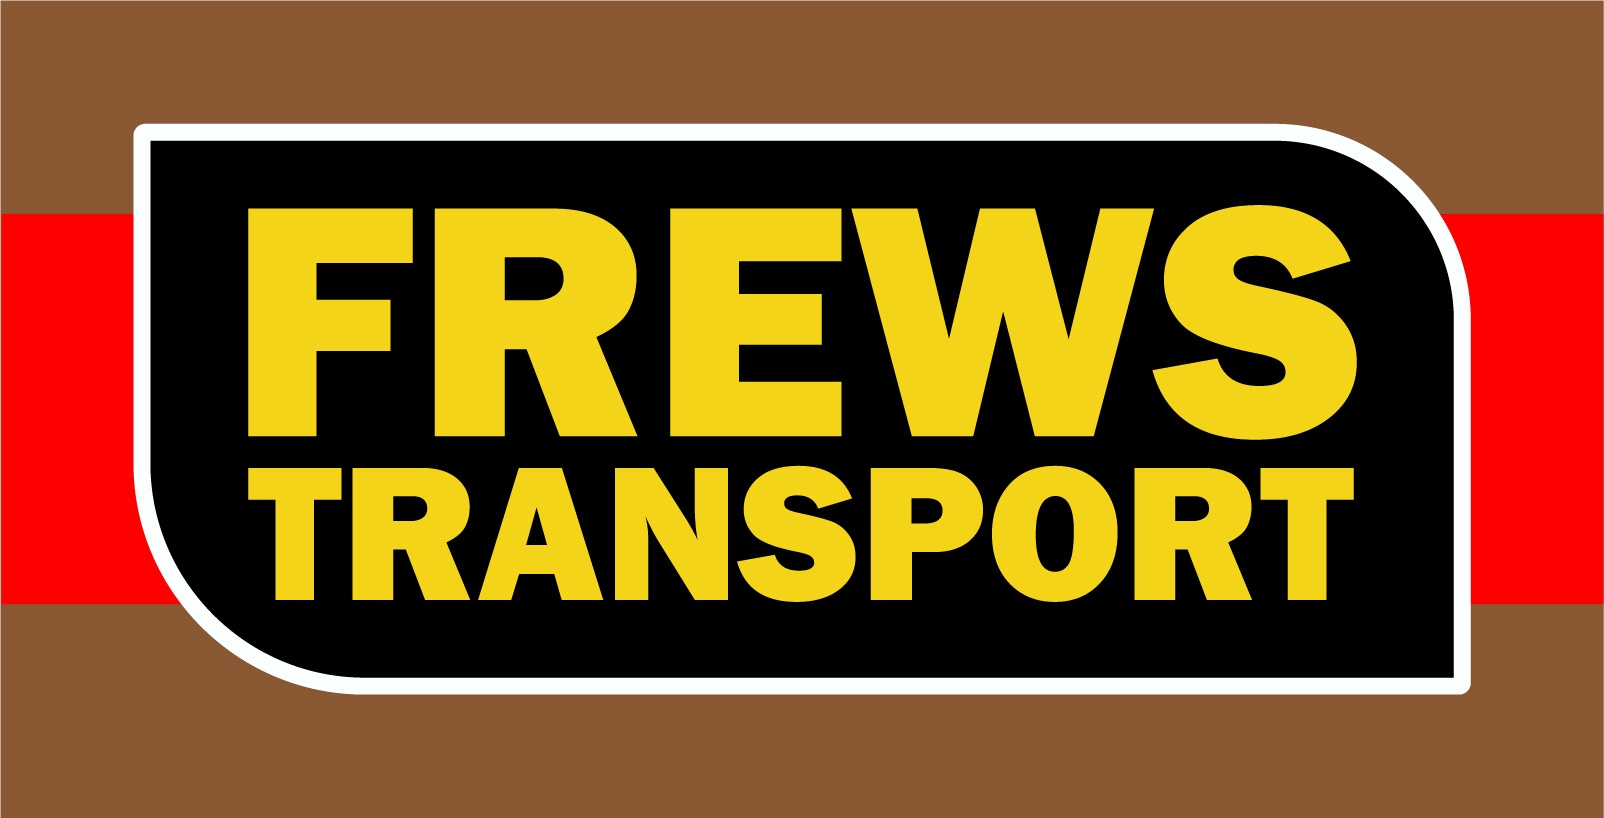 FrewsTransport